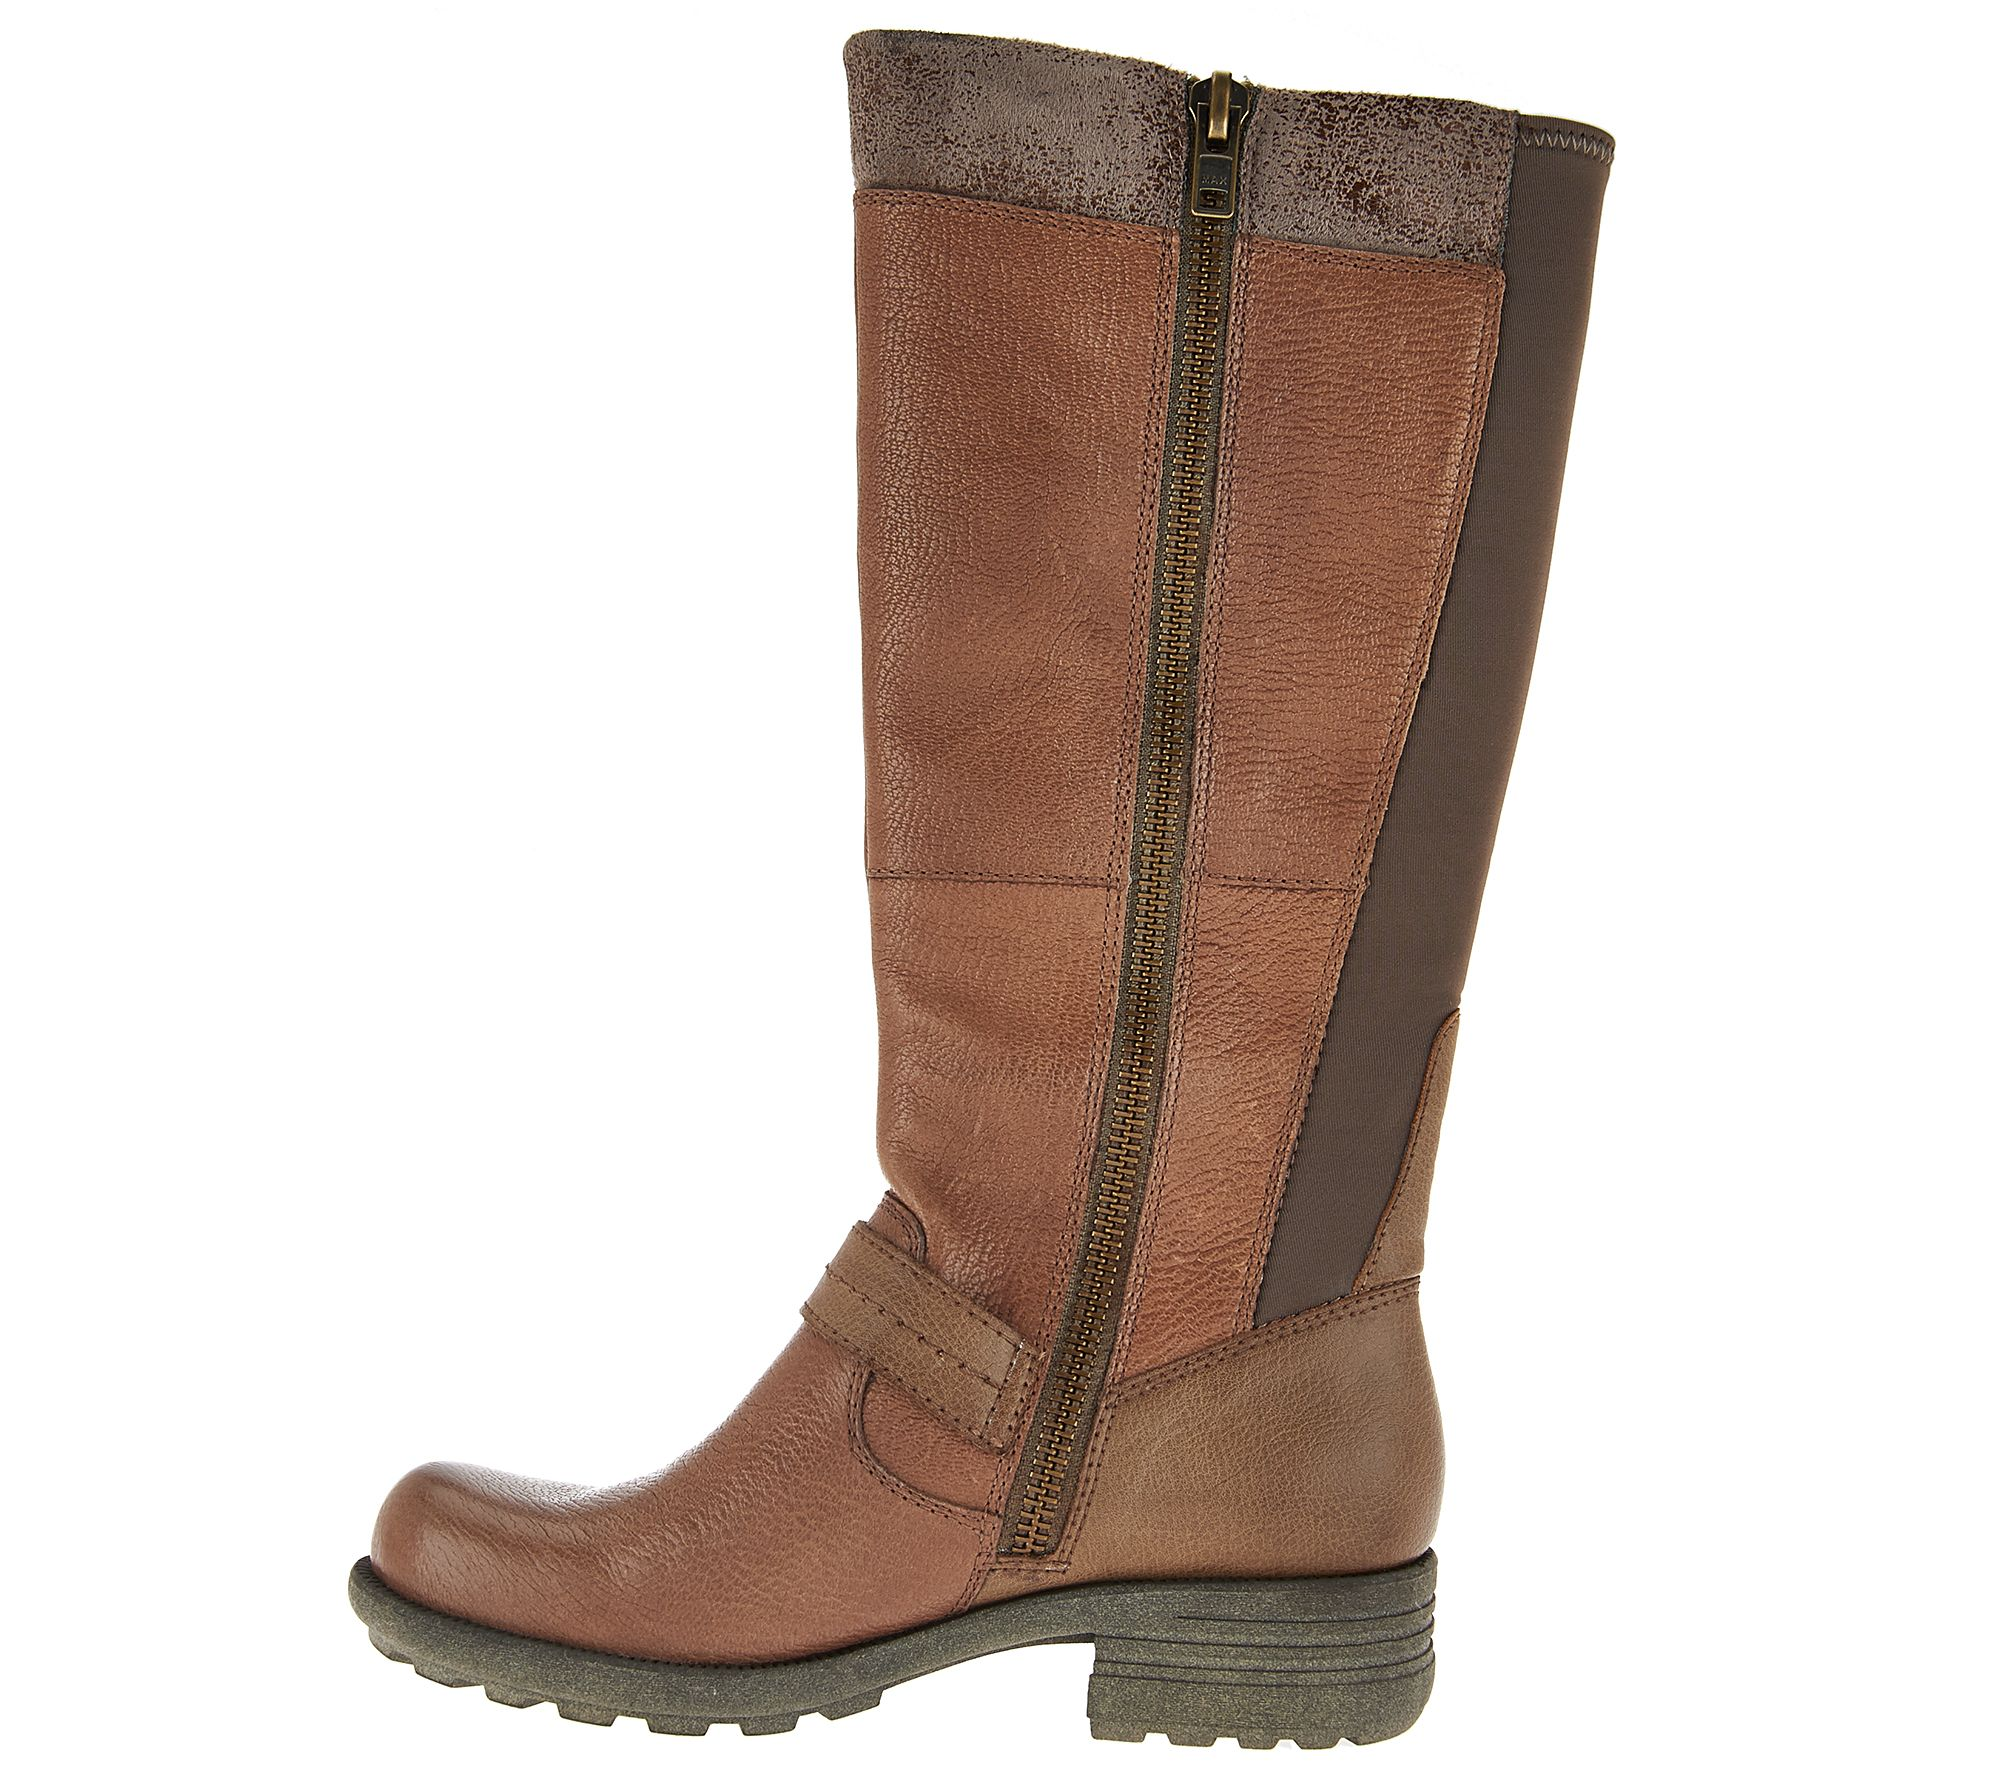 Earth Origins Leather Wide Calf Tall Boots - Portia - Page 1 — QVC.com